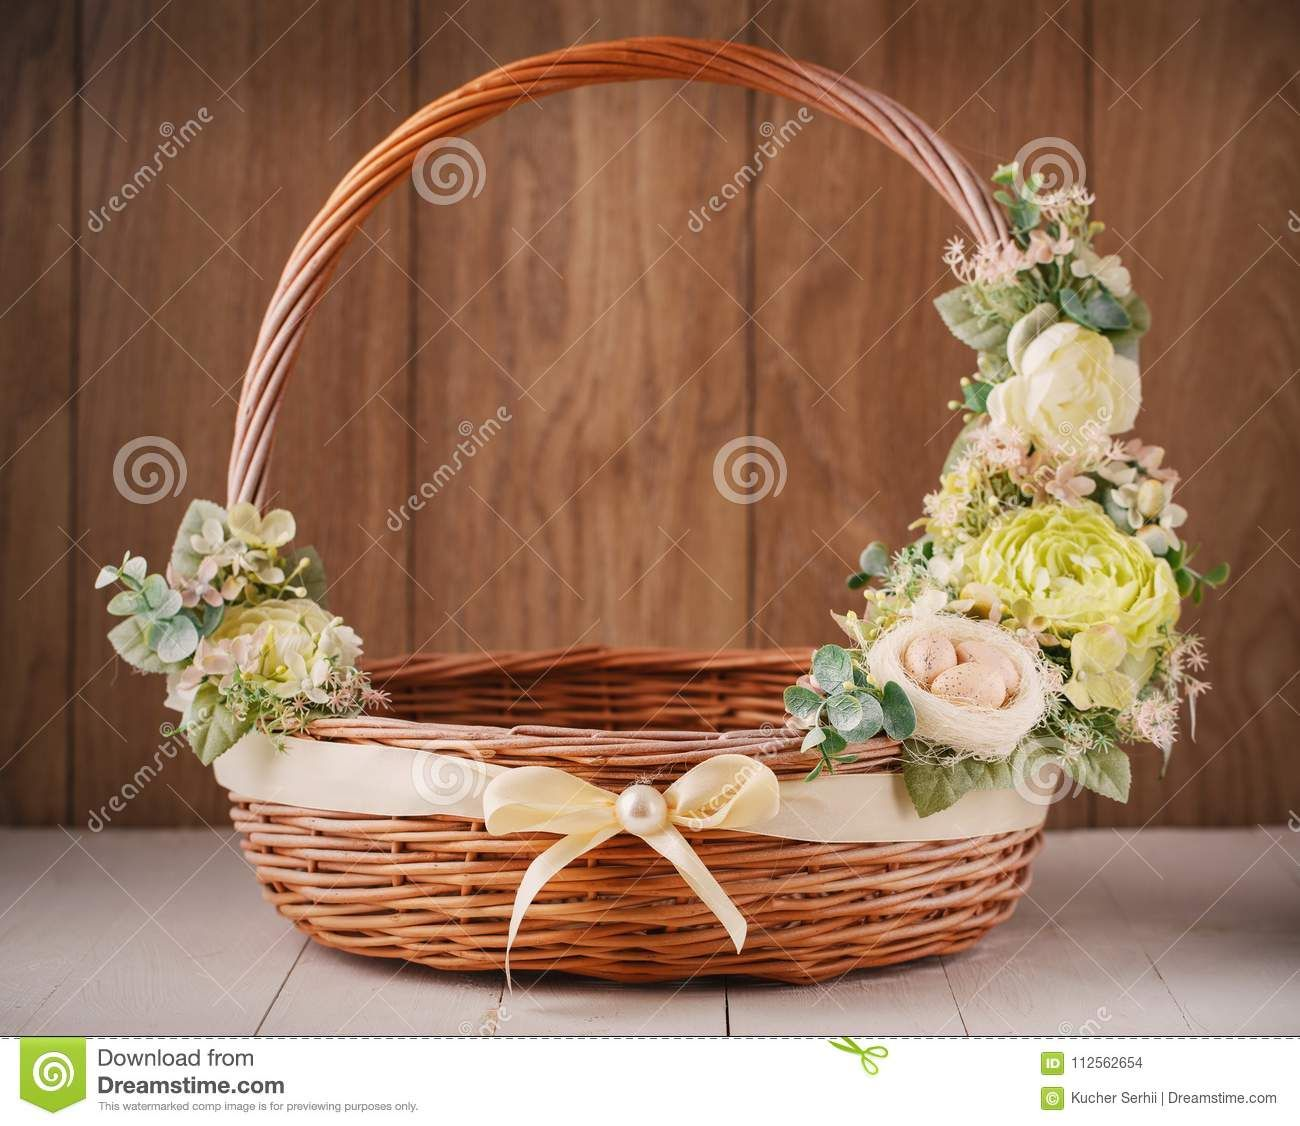 Pin By Maria Challe On Dia Del Pastor Easter Basket Diy Basket